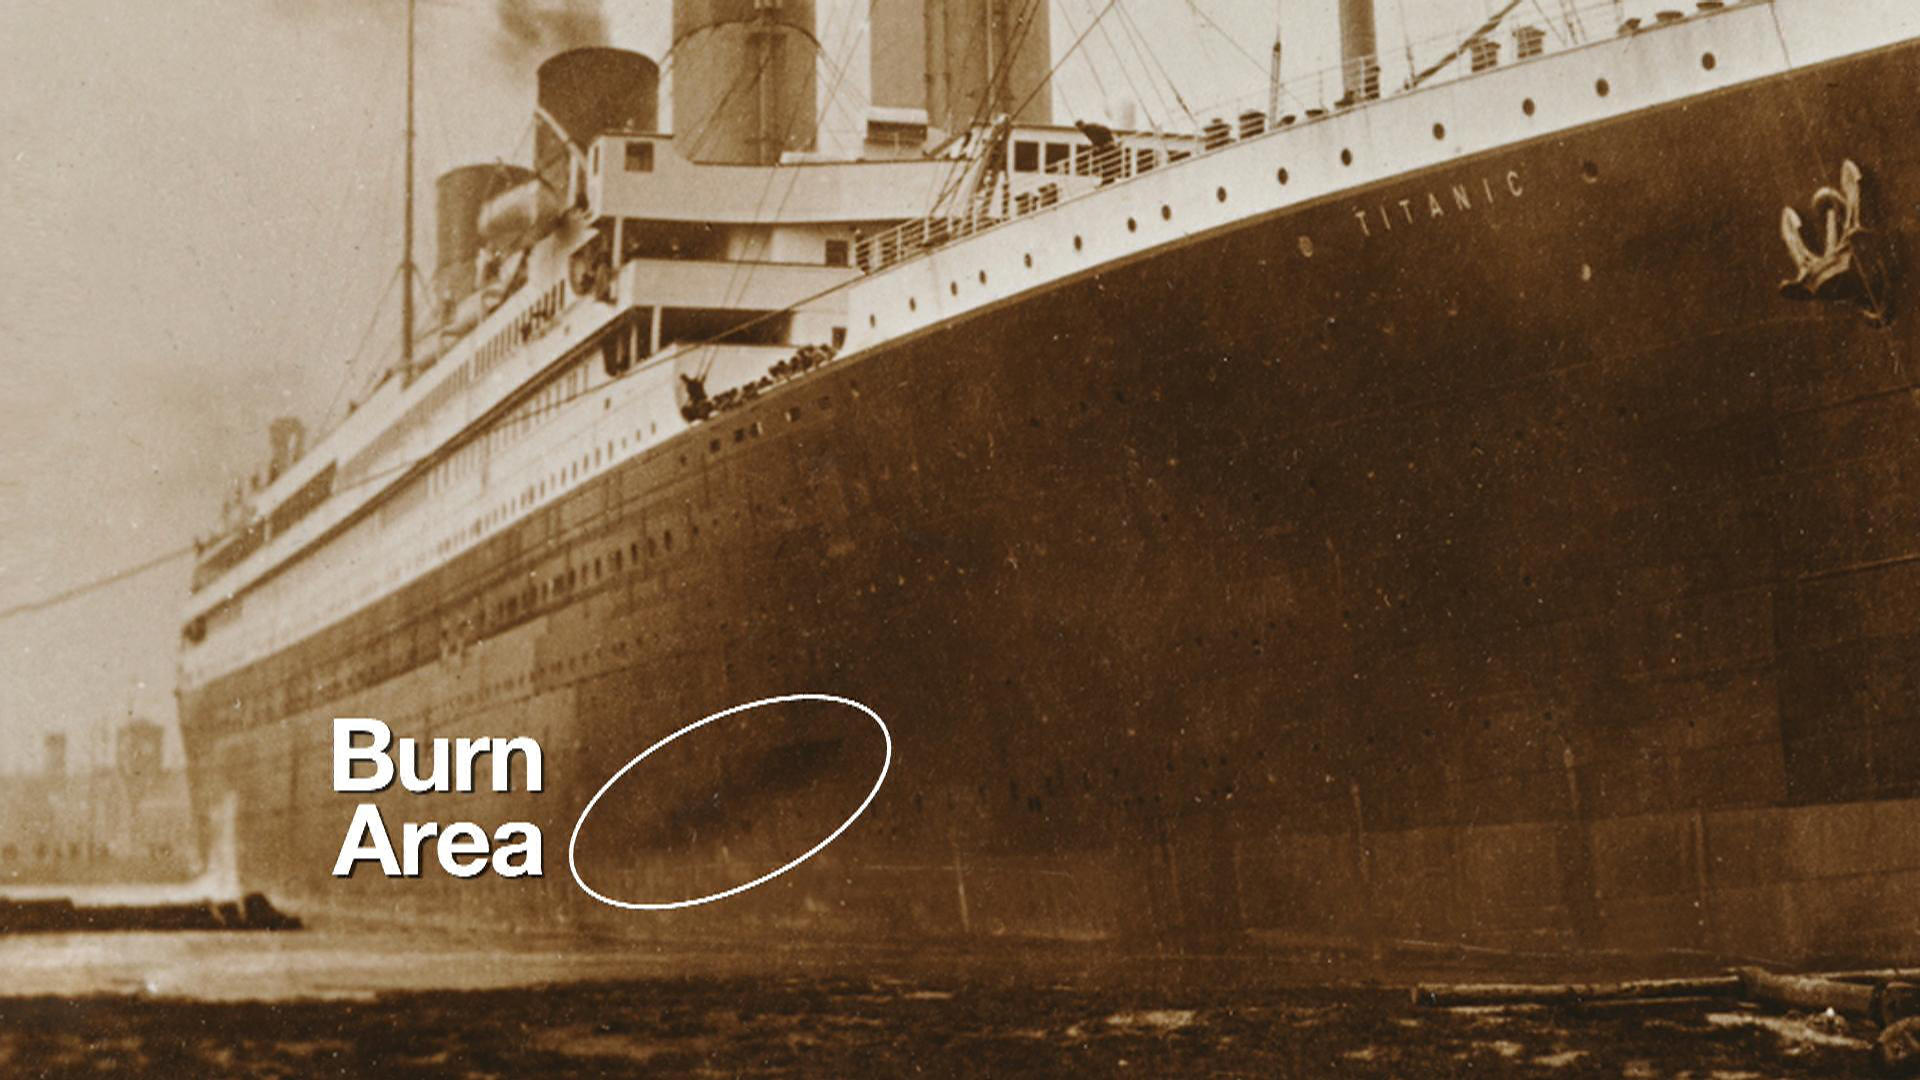 Documentary identifies second culprit in the sinking of